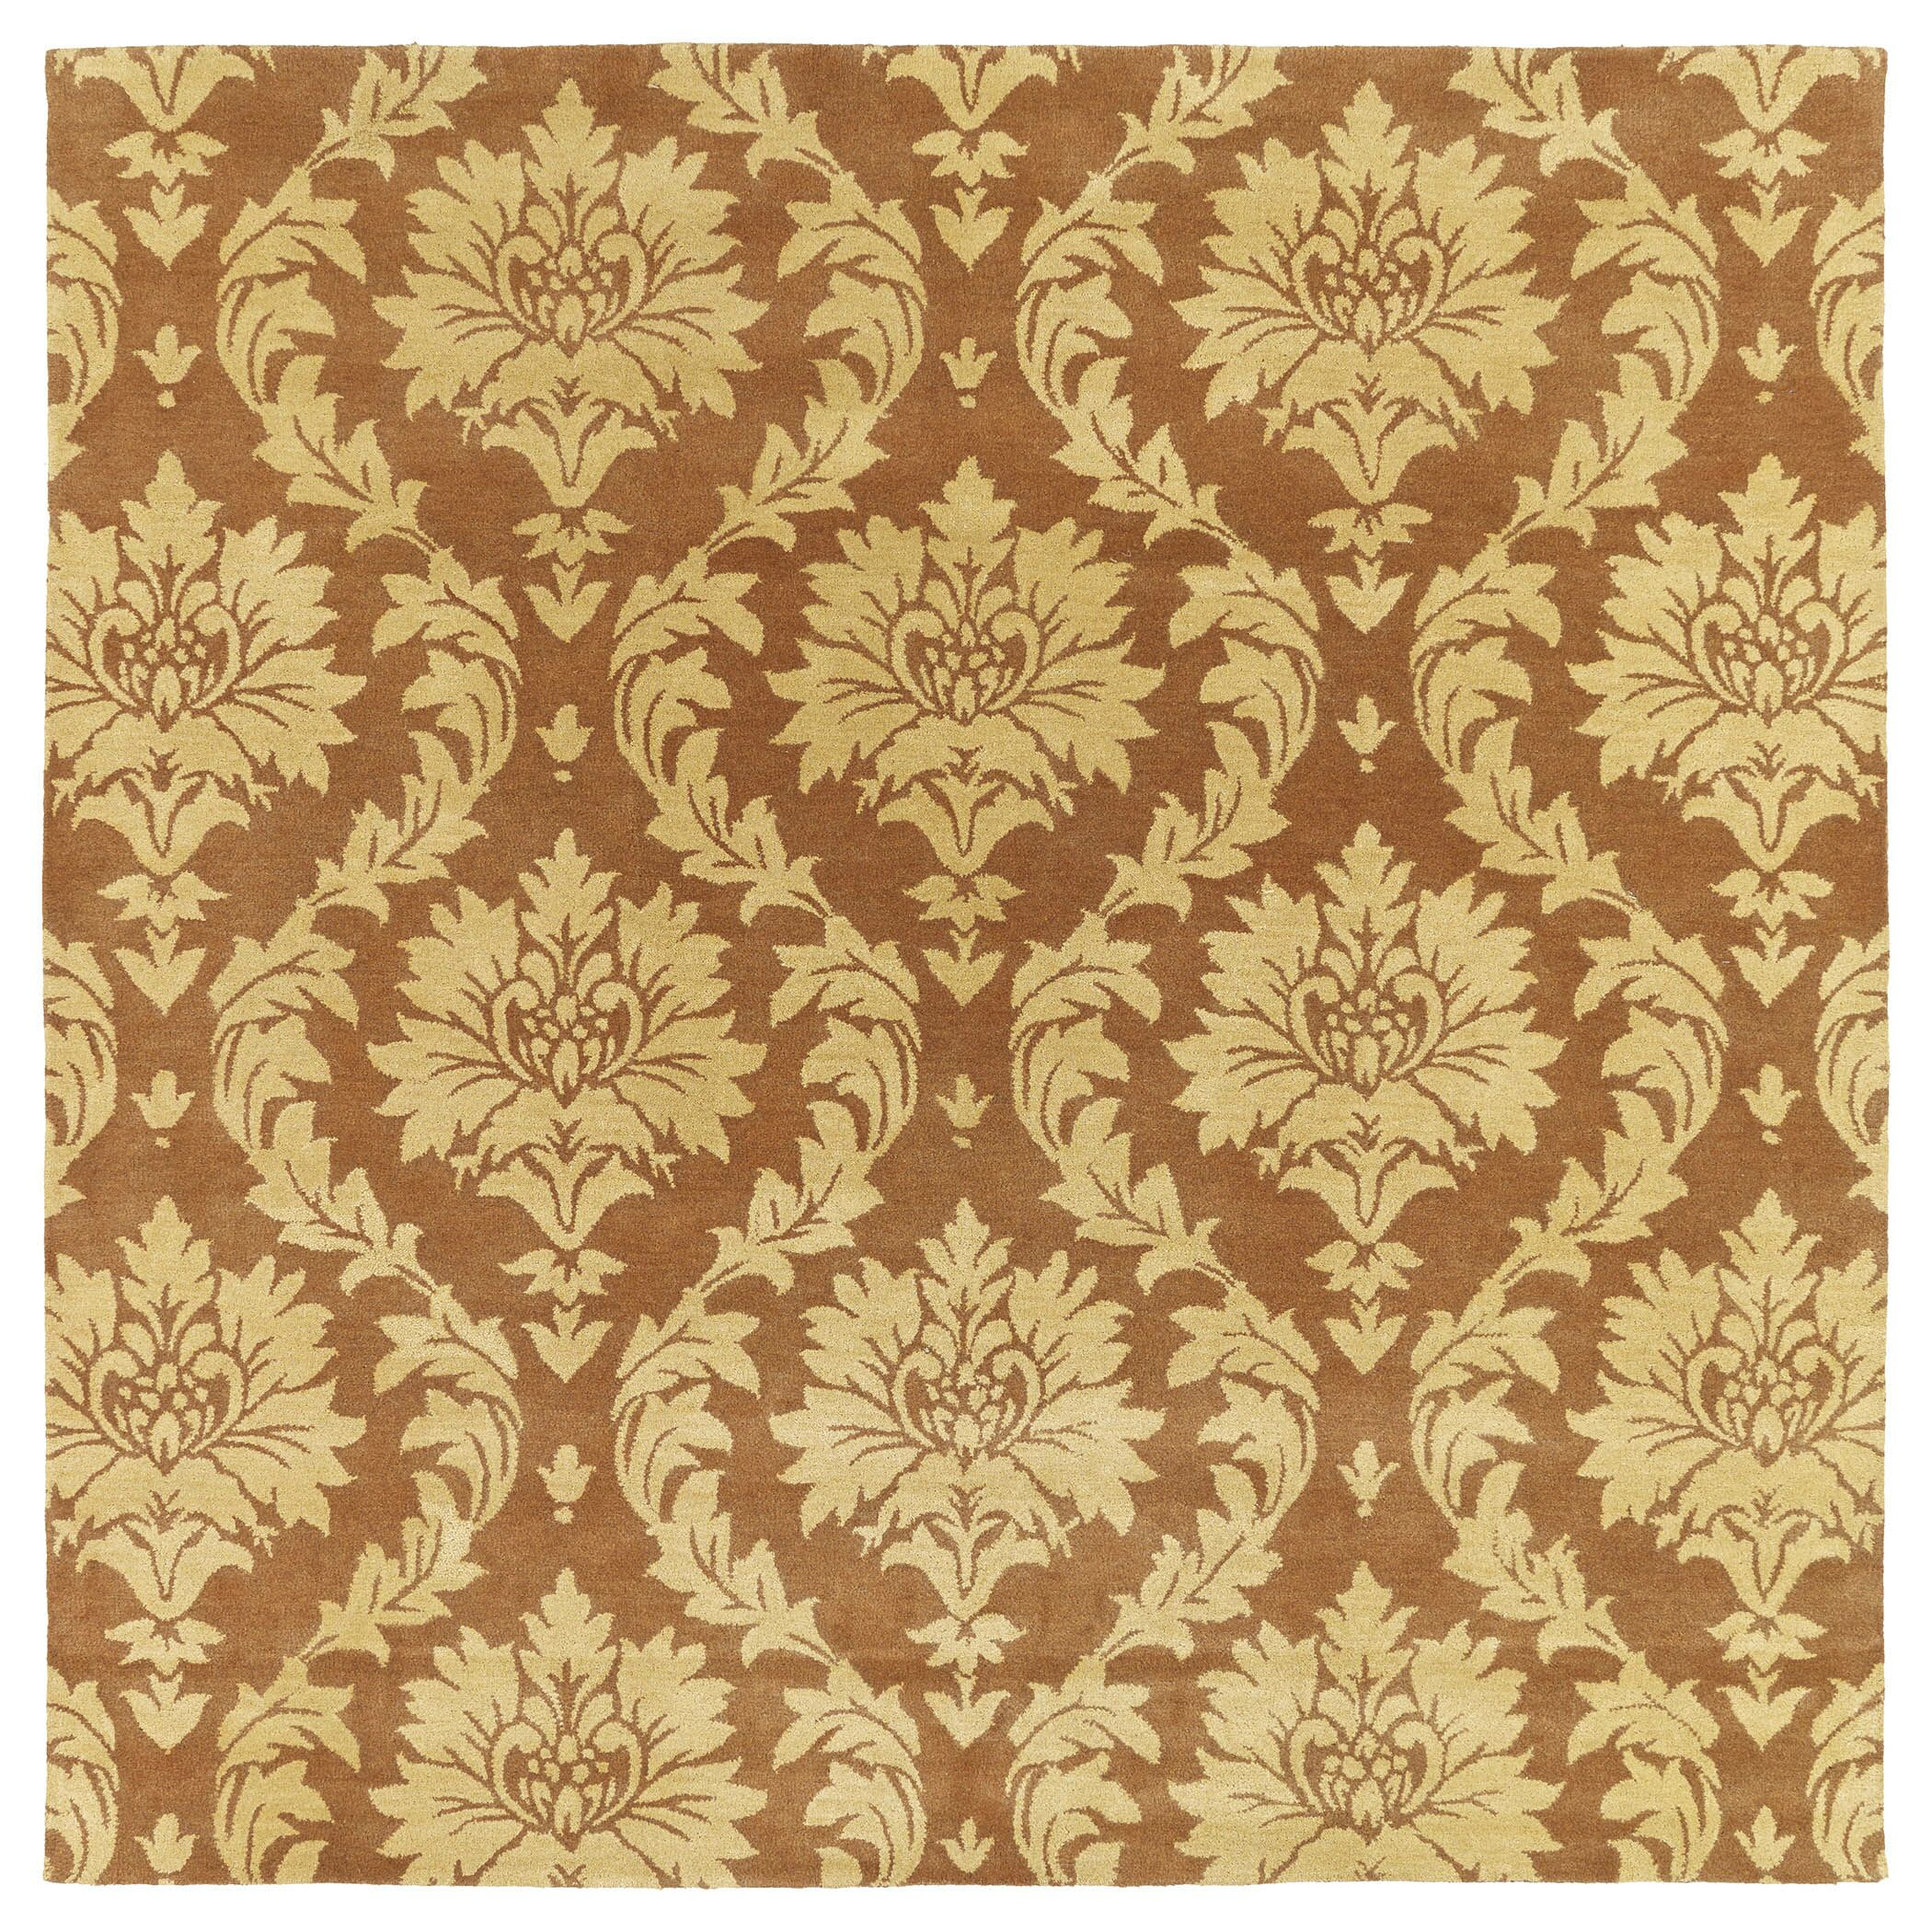 Drewery Brown/Yellow Area Rug Rug Size: Square 7'9